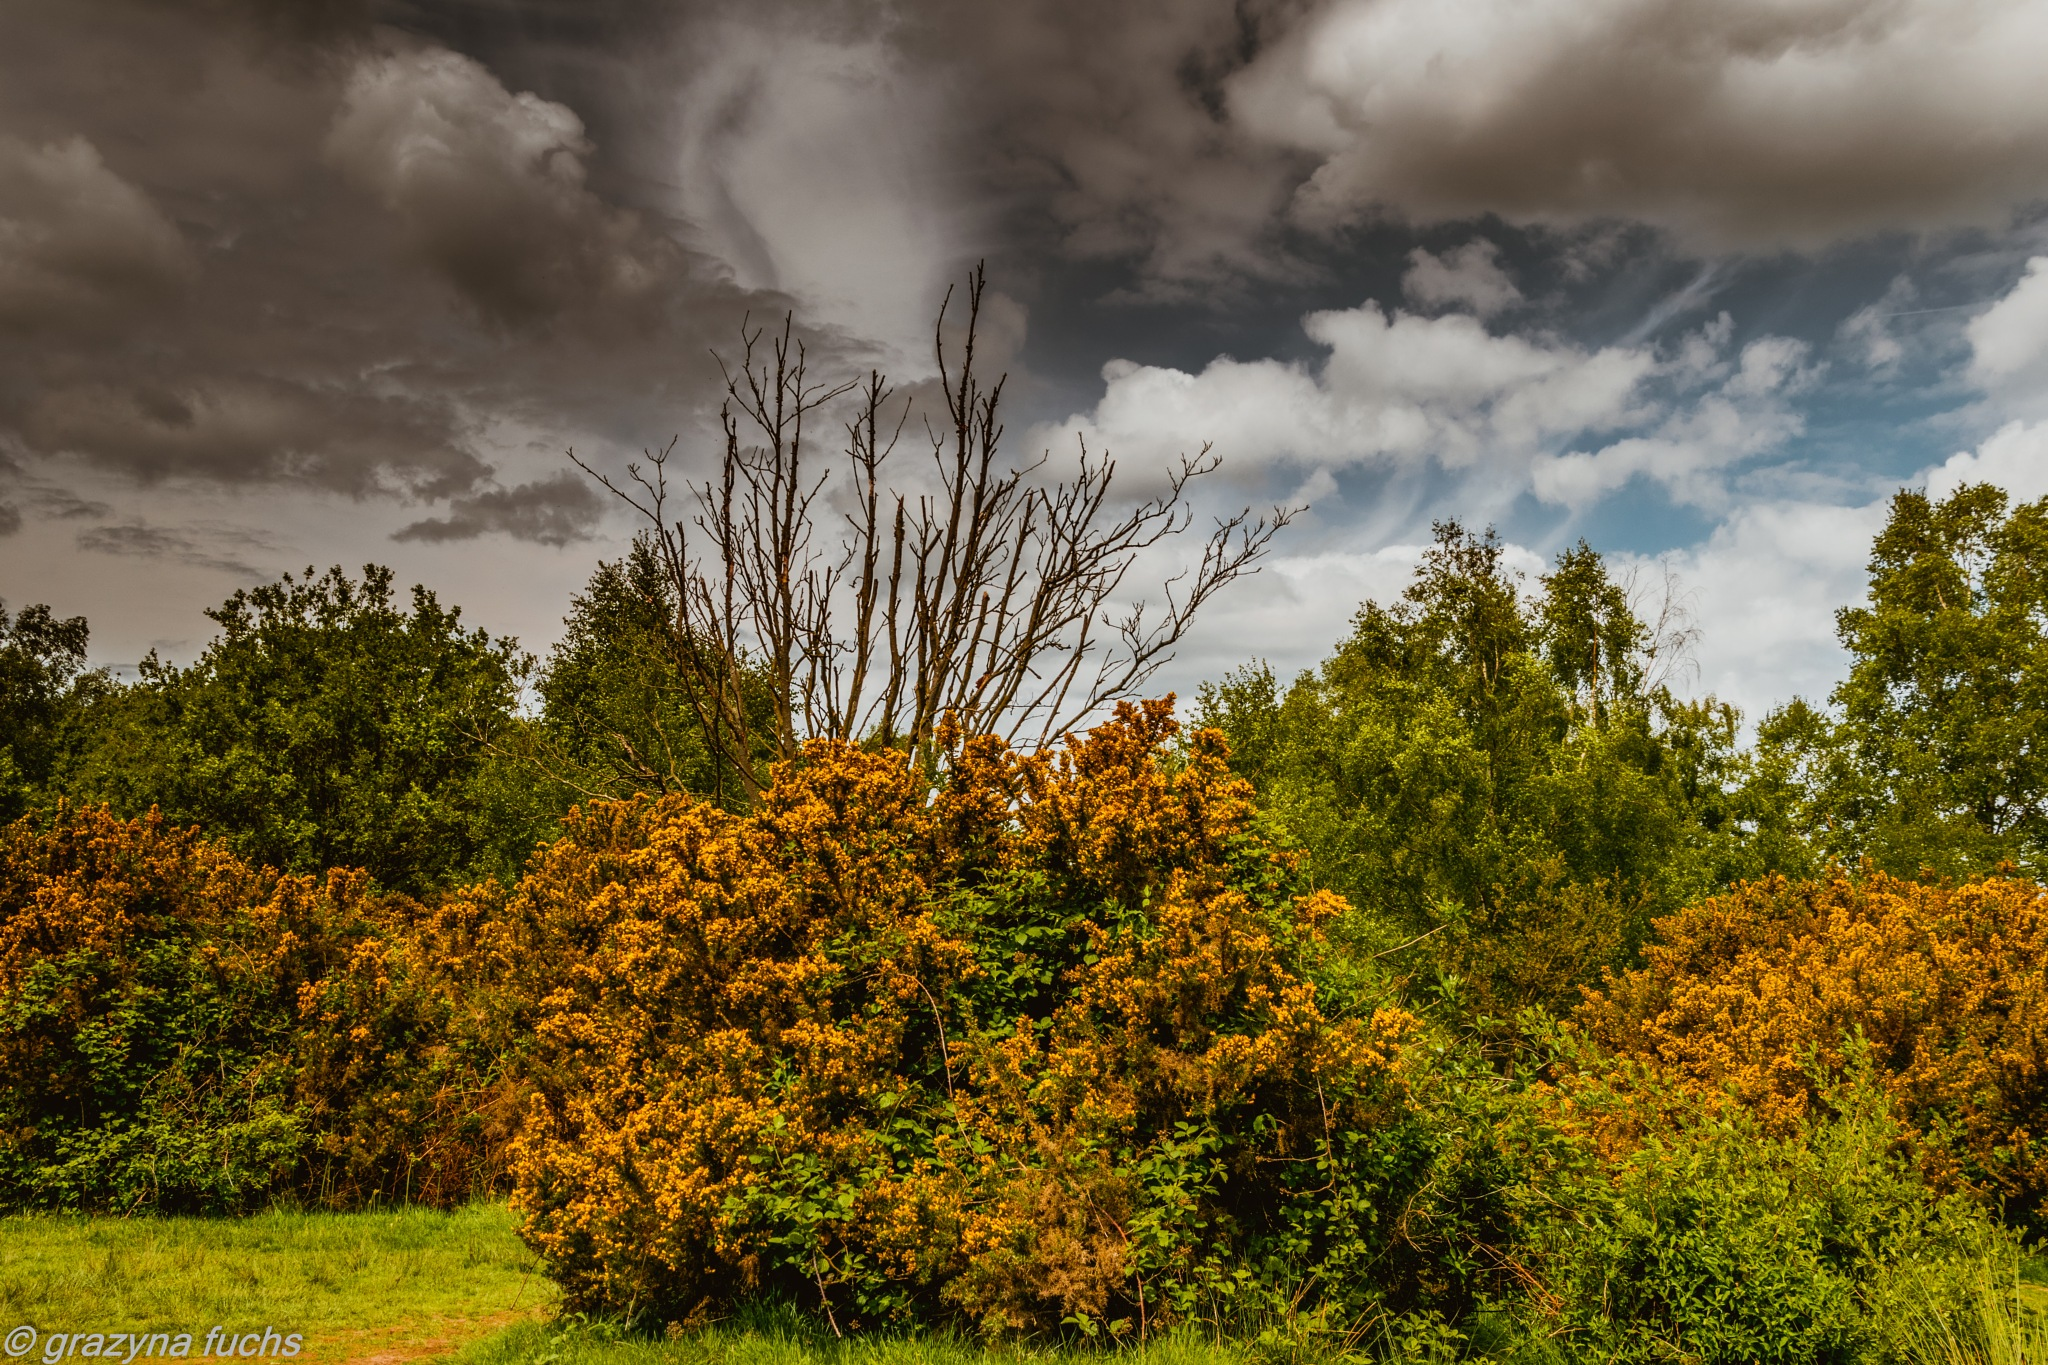 Headley Heath was acquired by the National Trust in 1946 from the Lord of the Manor, it being common by Grażyna Fuchs